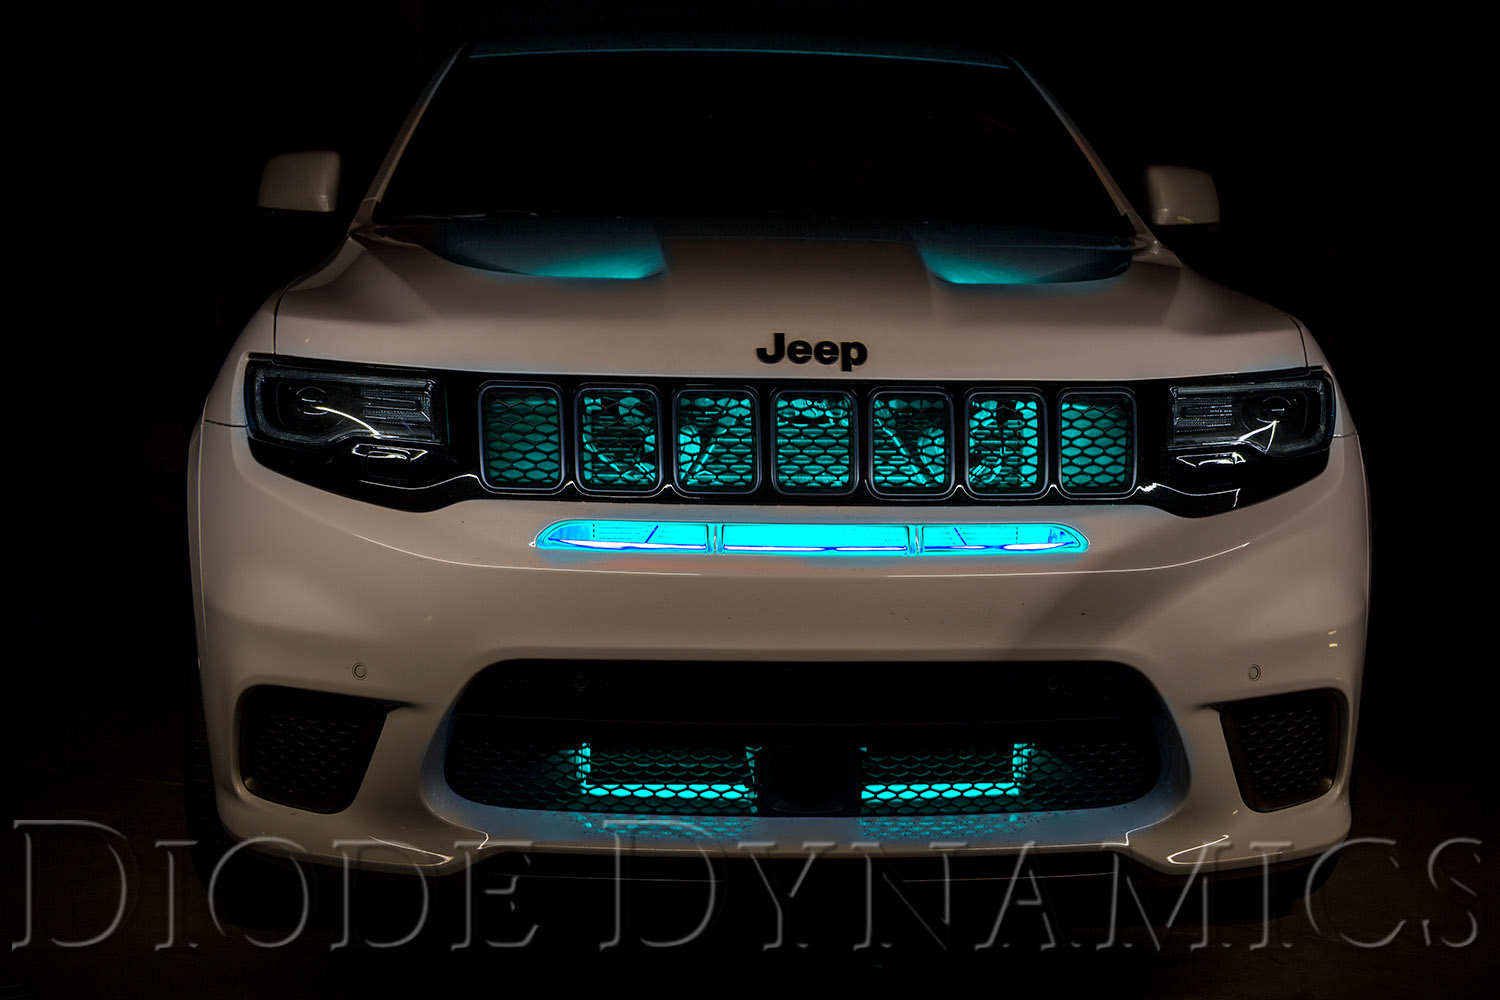 Jeep Grand Cherokee Trackhawk Led Lighting Upgrades Diode Dynamics 2014 Camaro Fog Light Wire Harness Multicolor Grille Kit Cyan Blue